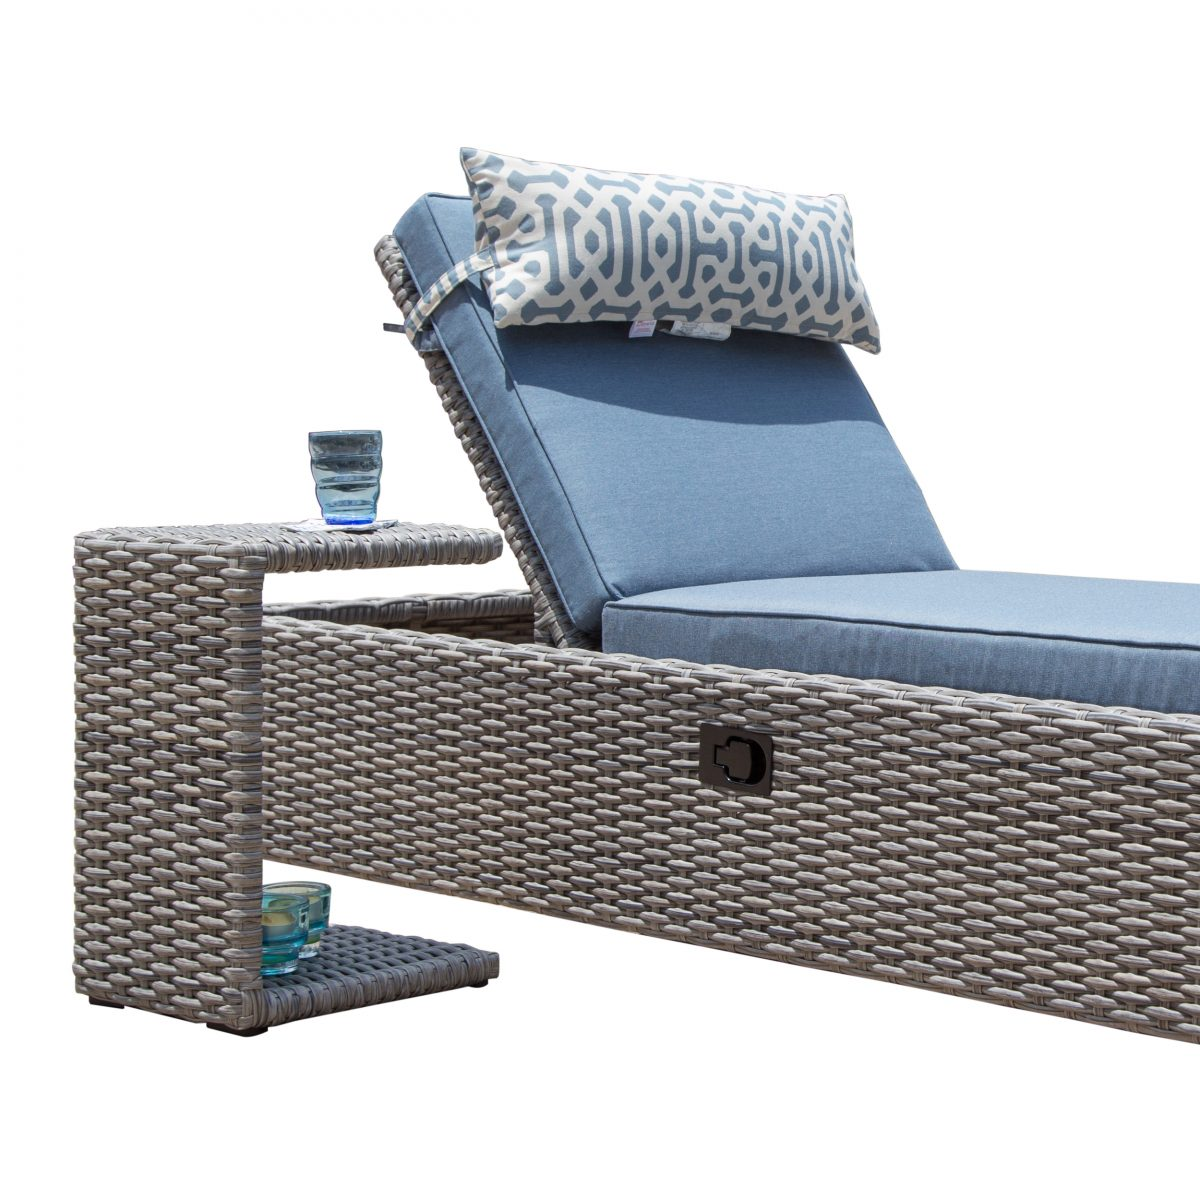 Sirio Niko Chaise Lounge Chair with Side Table in Slate   Starsong on